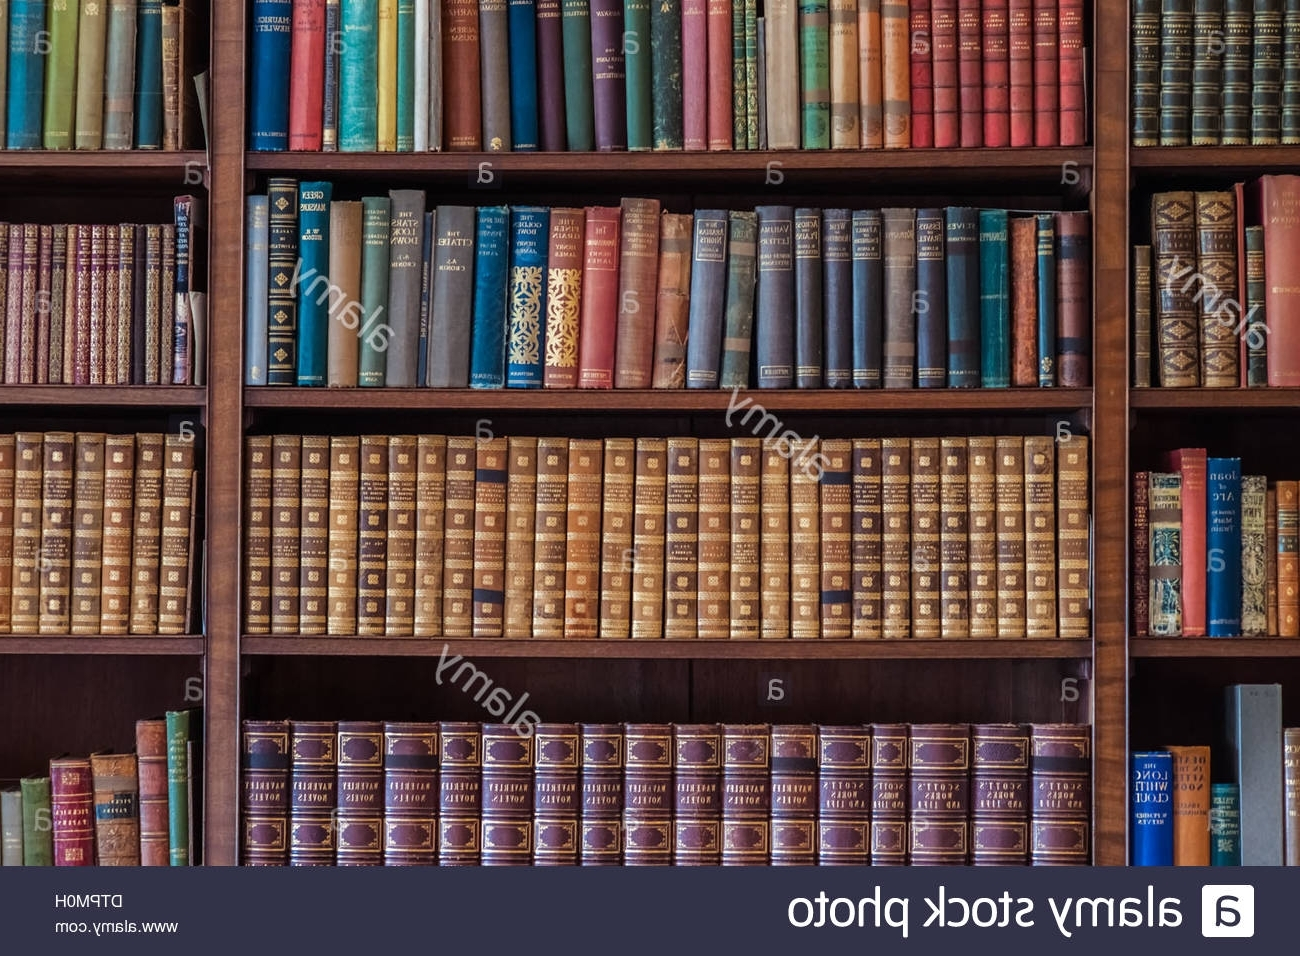 Old Antique Books On Bookshelves Stock Photo, Royalty Free Image Throughout Most Current Bookshelves (View 11 of 15)